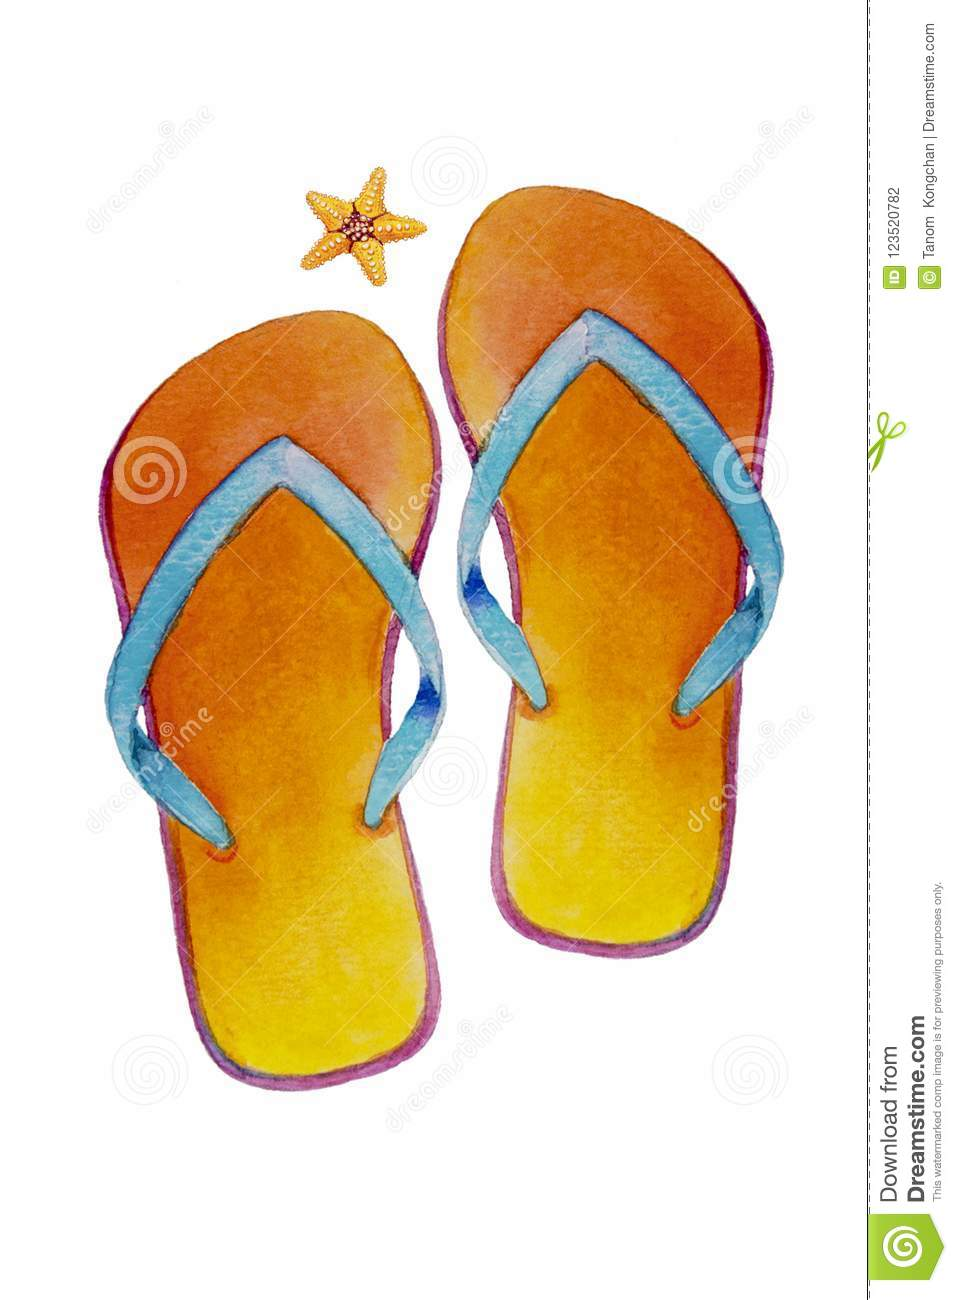 b9ab0172b91e7 Travel summer time with sea beach slippers. Watercolor painting  illustration of pair of sandals